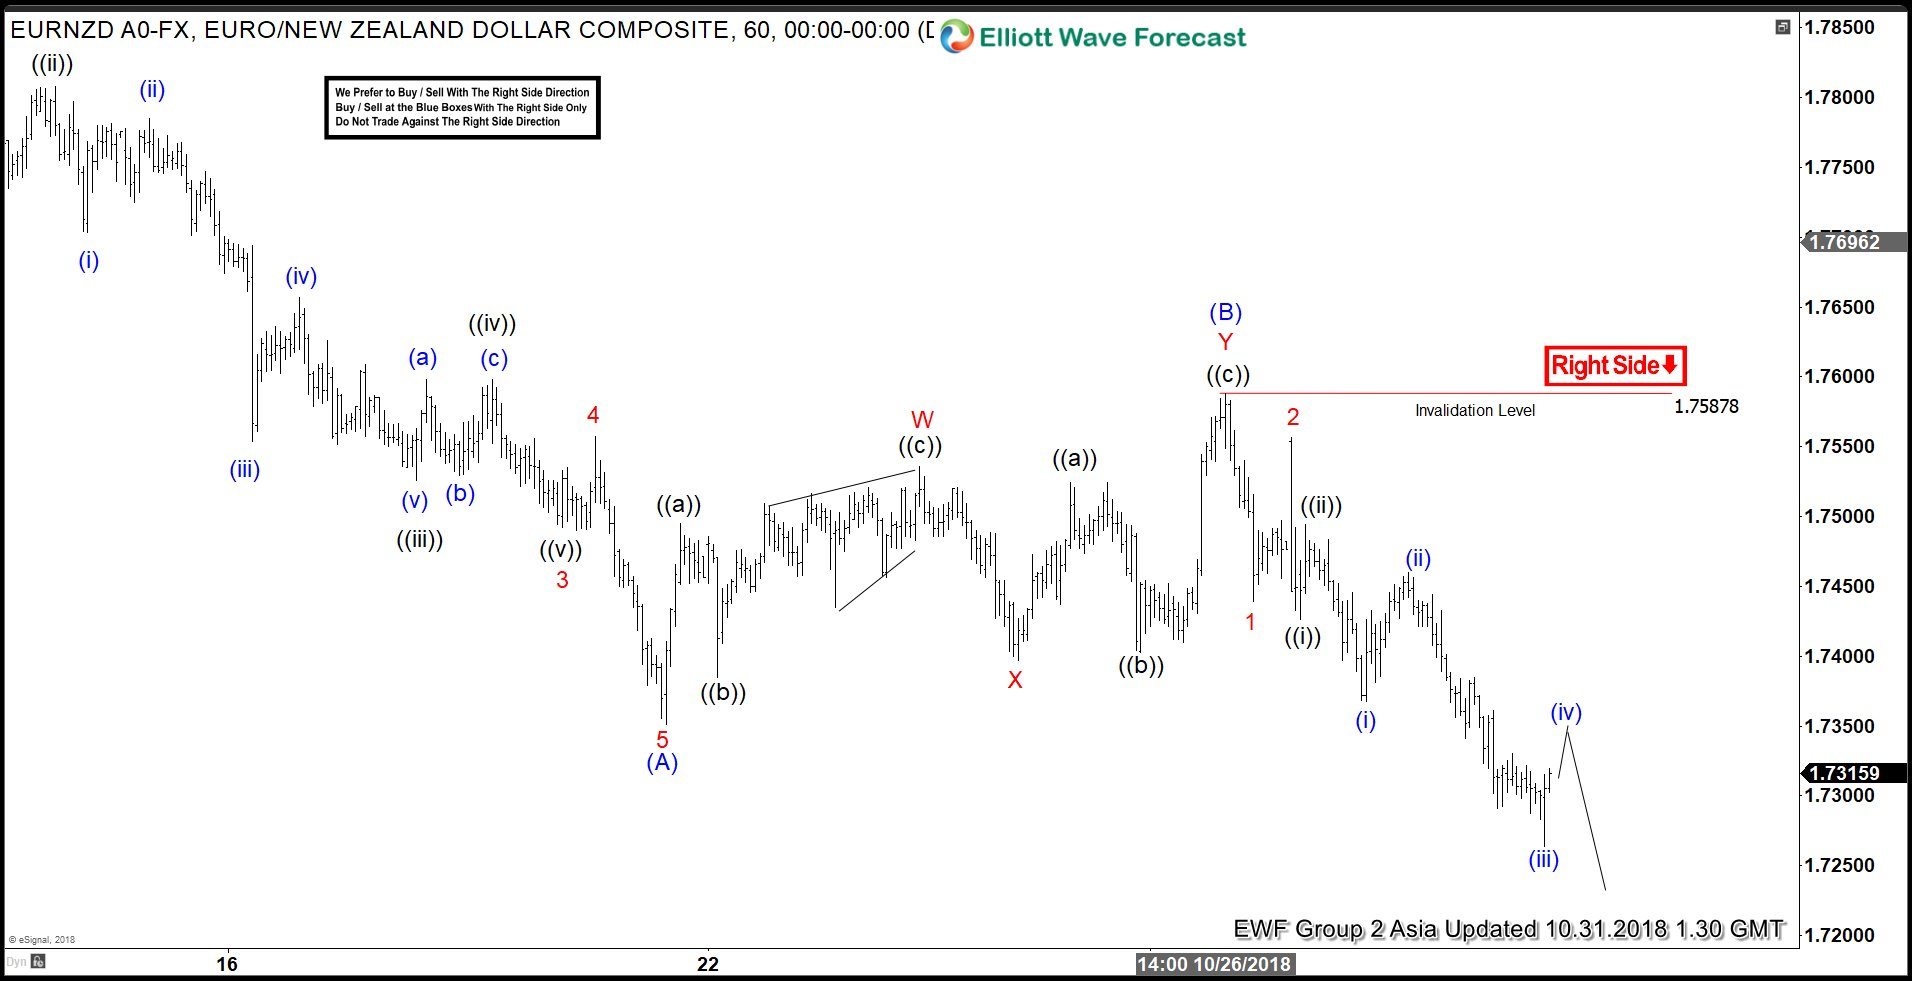 EURNZD: Elliott Wave Showing Incomplete Sequence